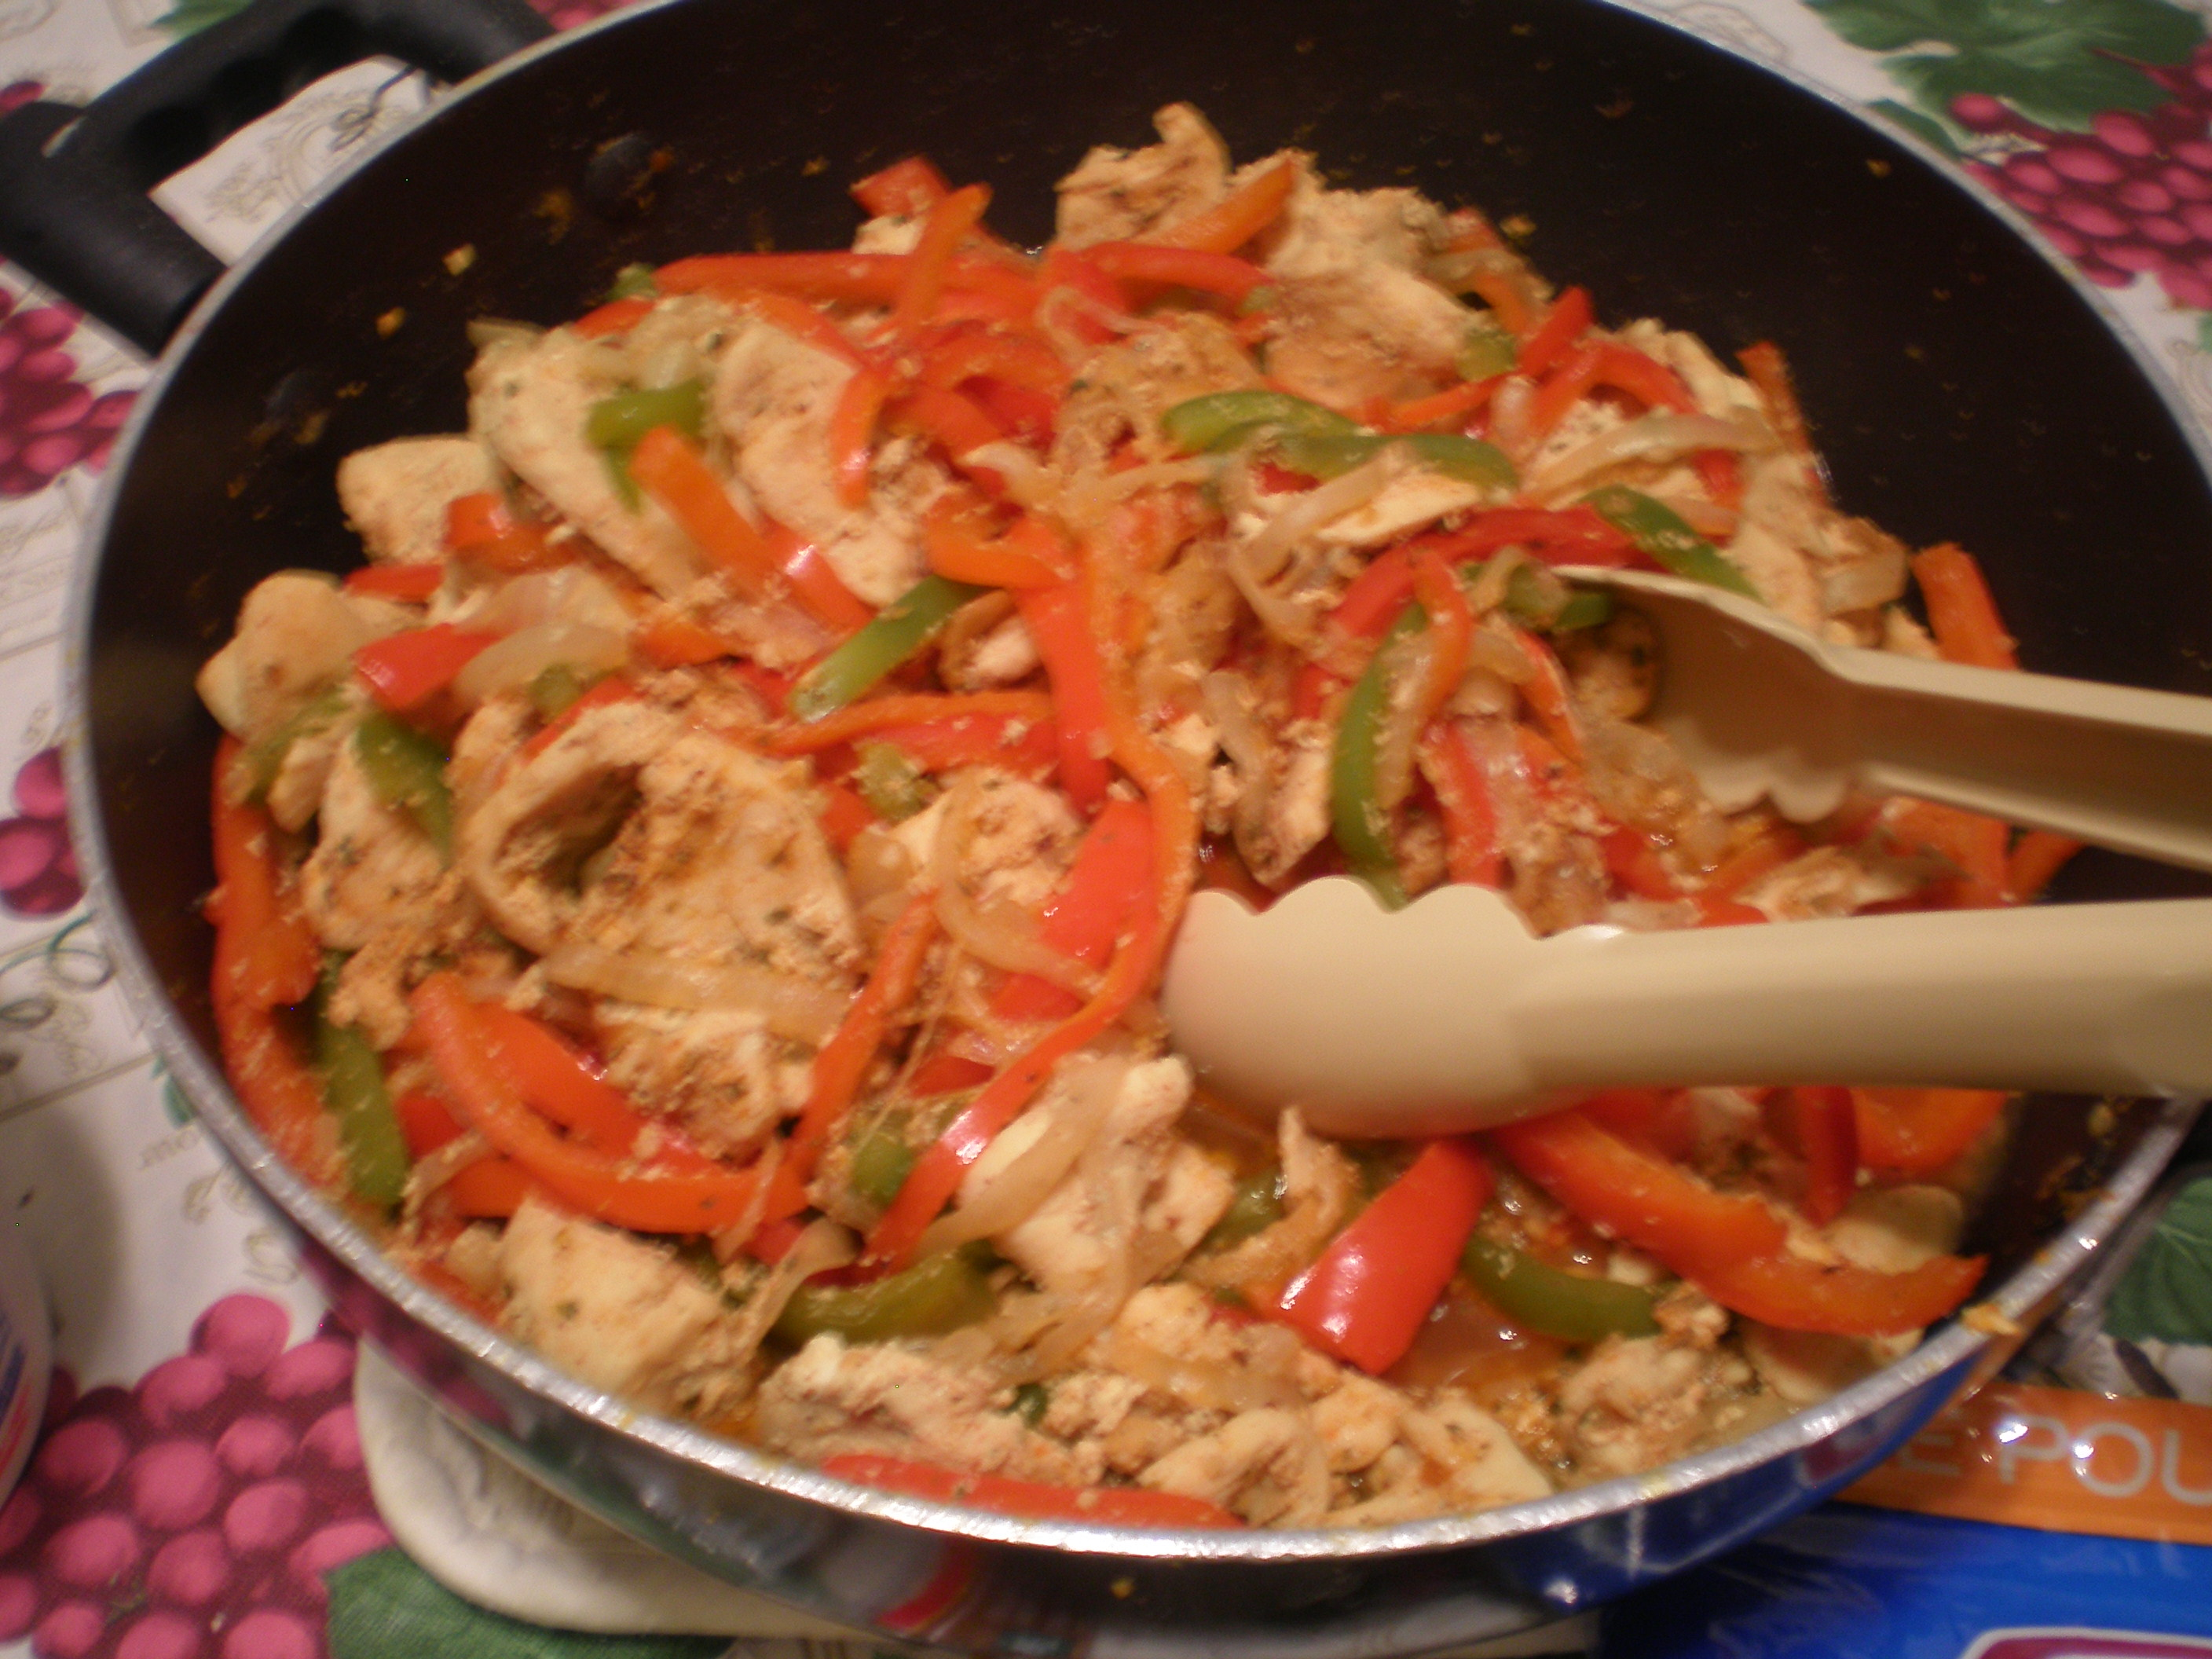 Chicken Fajitas | ♪ ♫ ♪ A Symphony In The Kitchen ♪ ♫ ♪